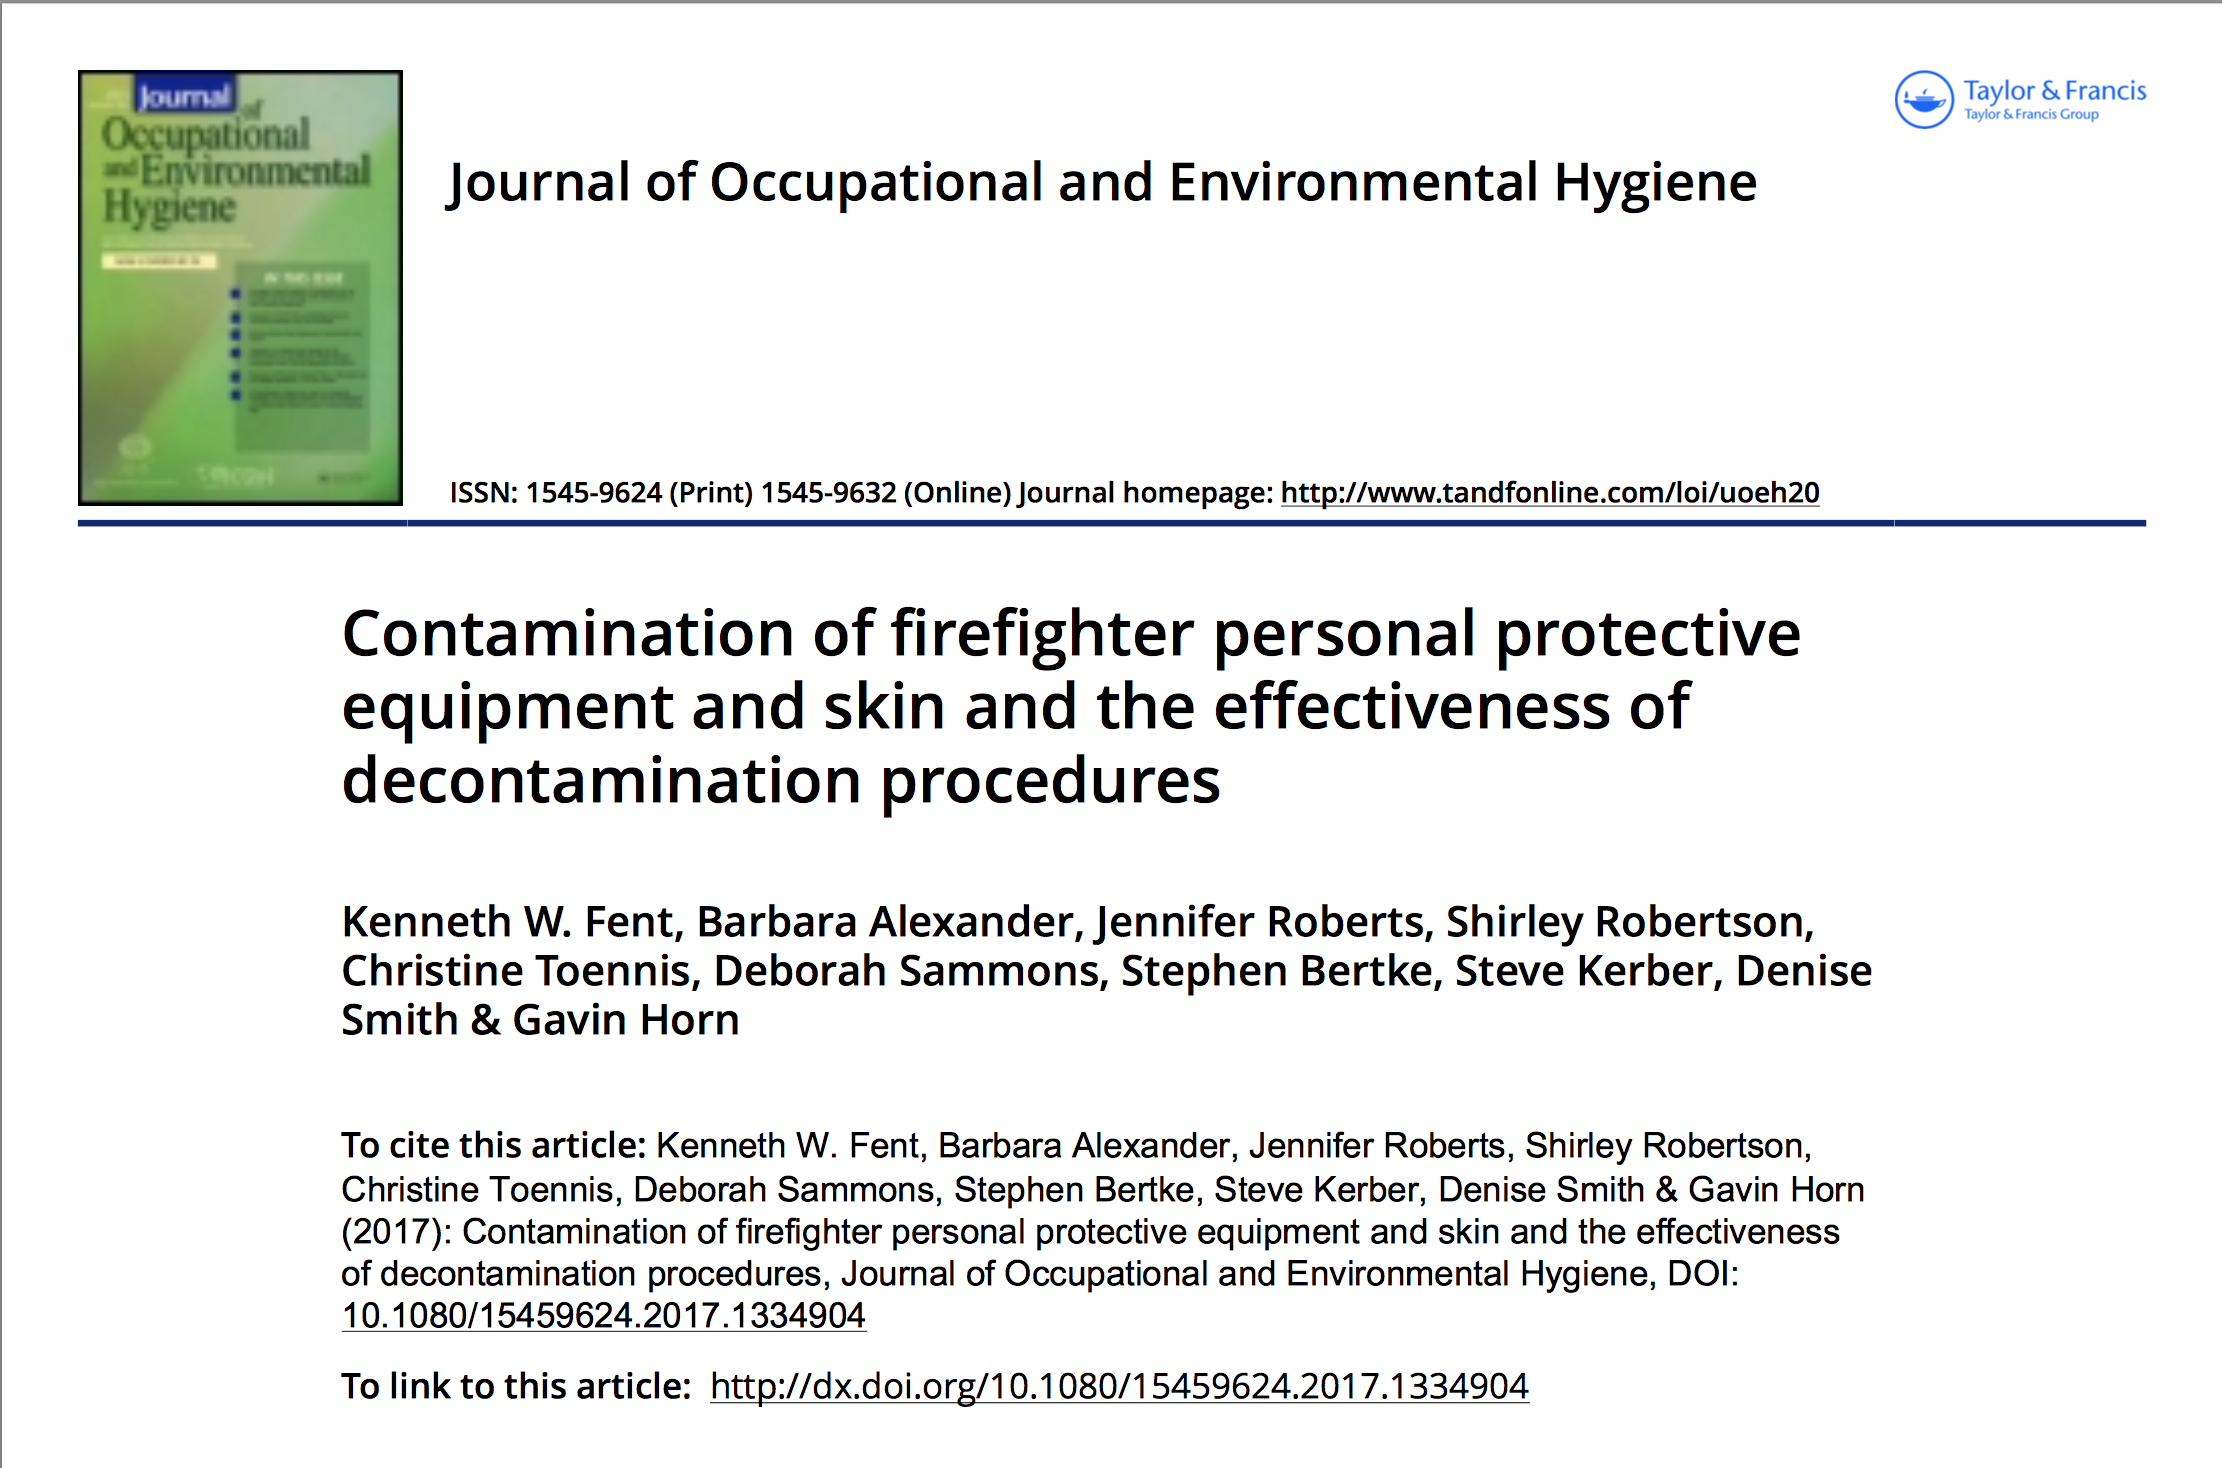 Peer-Reviewed Journal Article Examines the Effectiveness of Decontamination Procedures on Firefighter Personal Protective Equipment and Skin